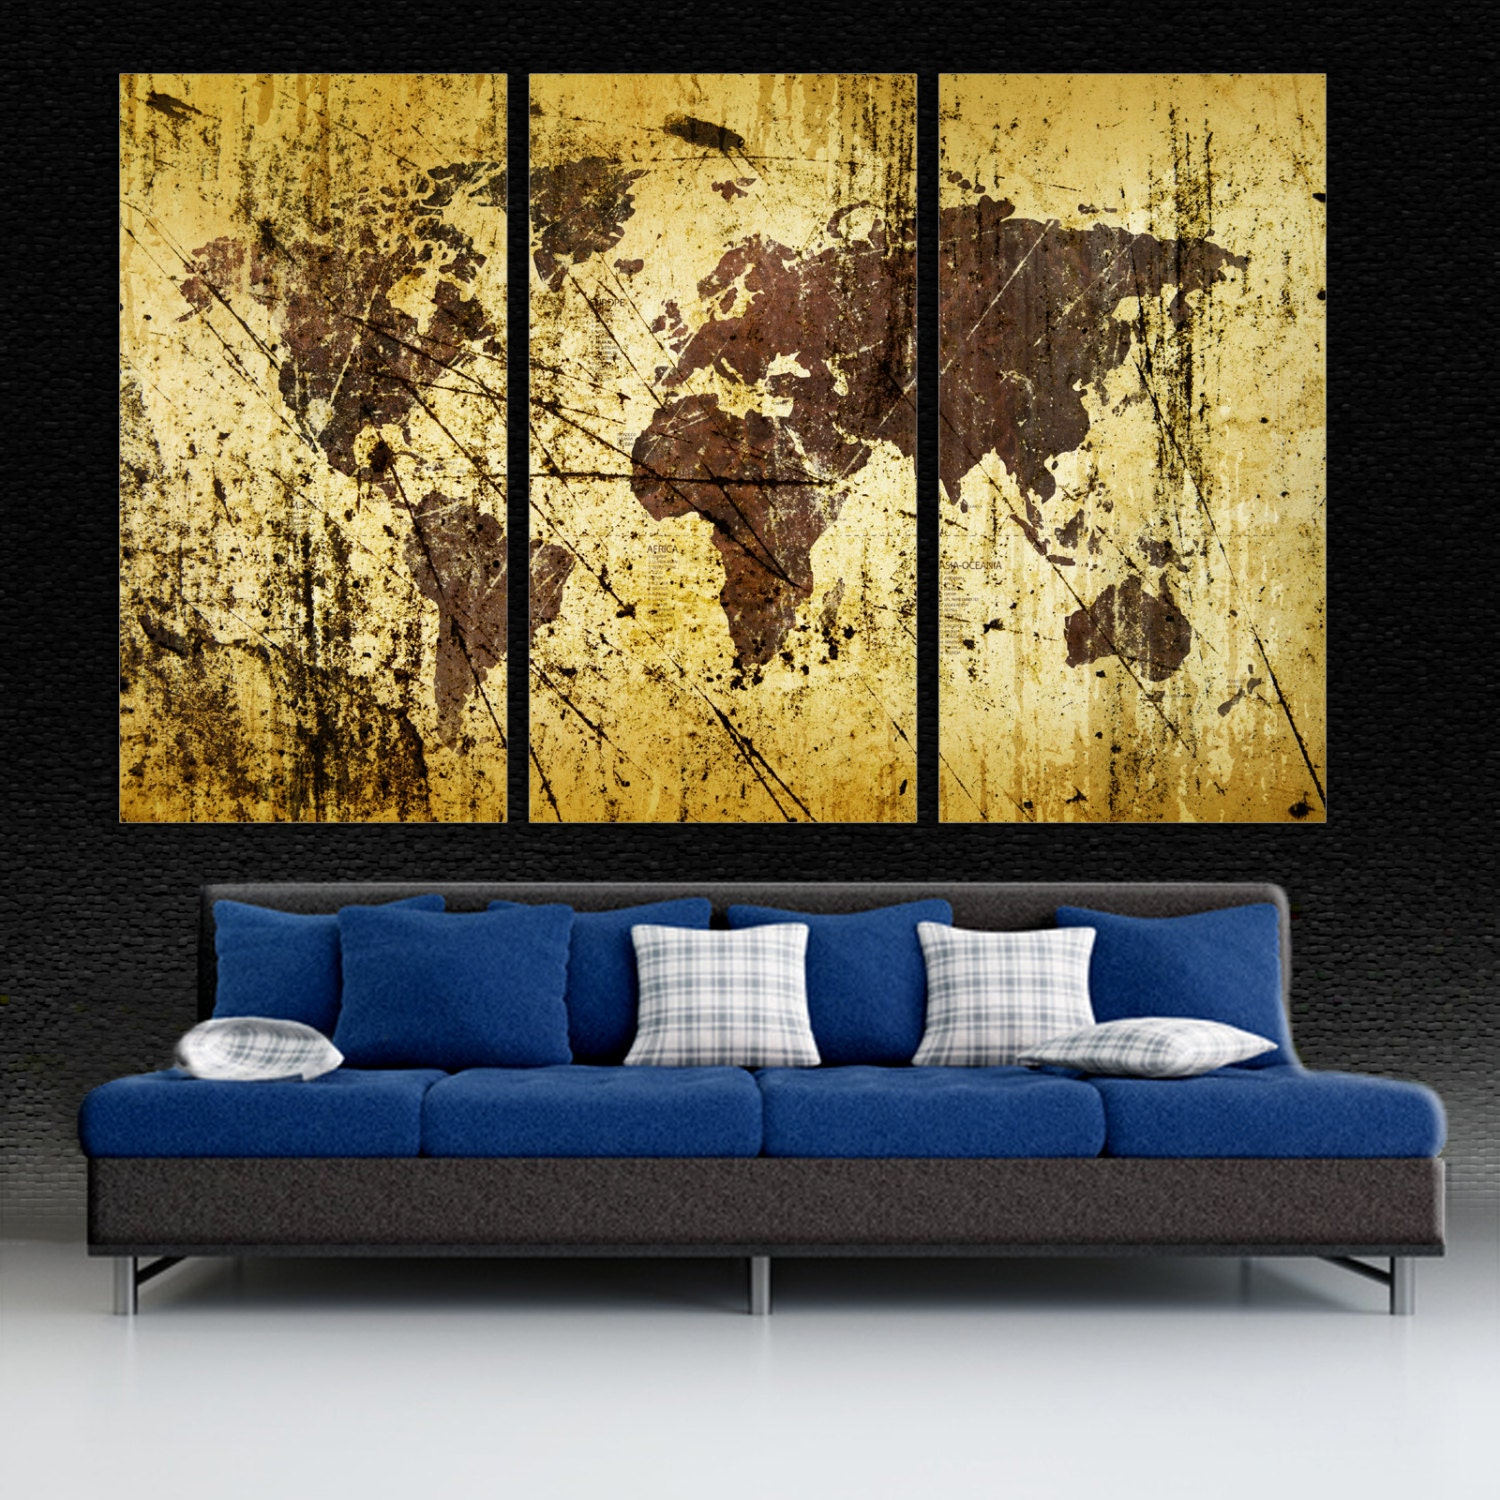 3 panel split abstract world map canvas print 1 5 deep Interiors by design canvas art